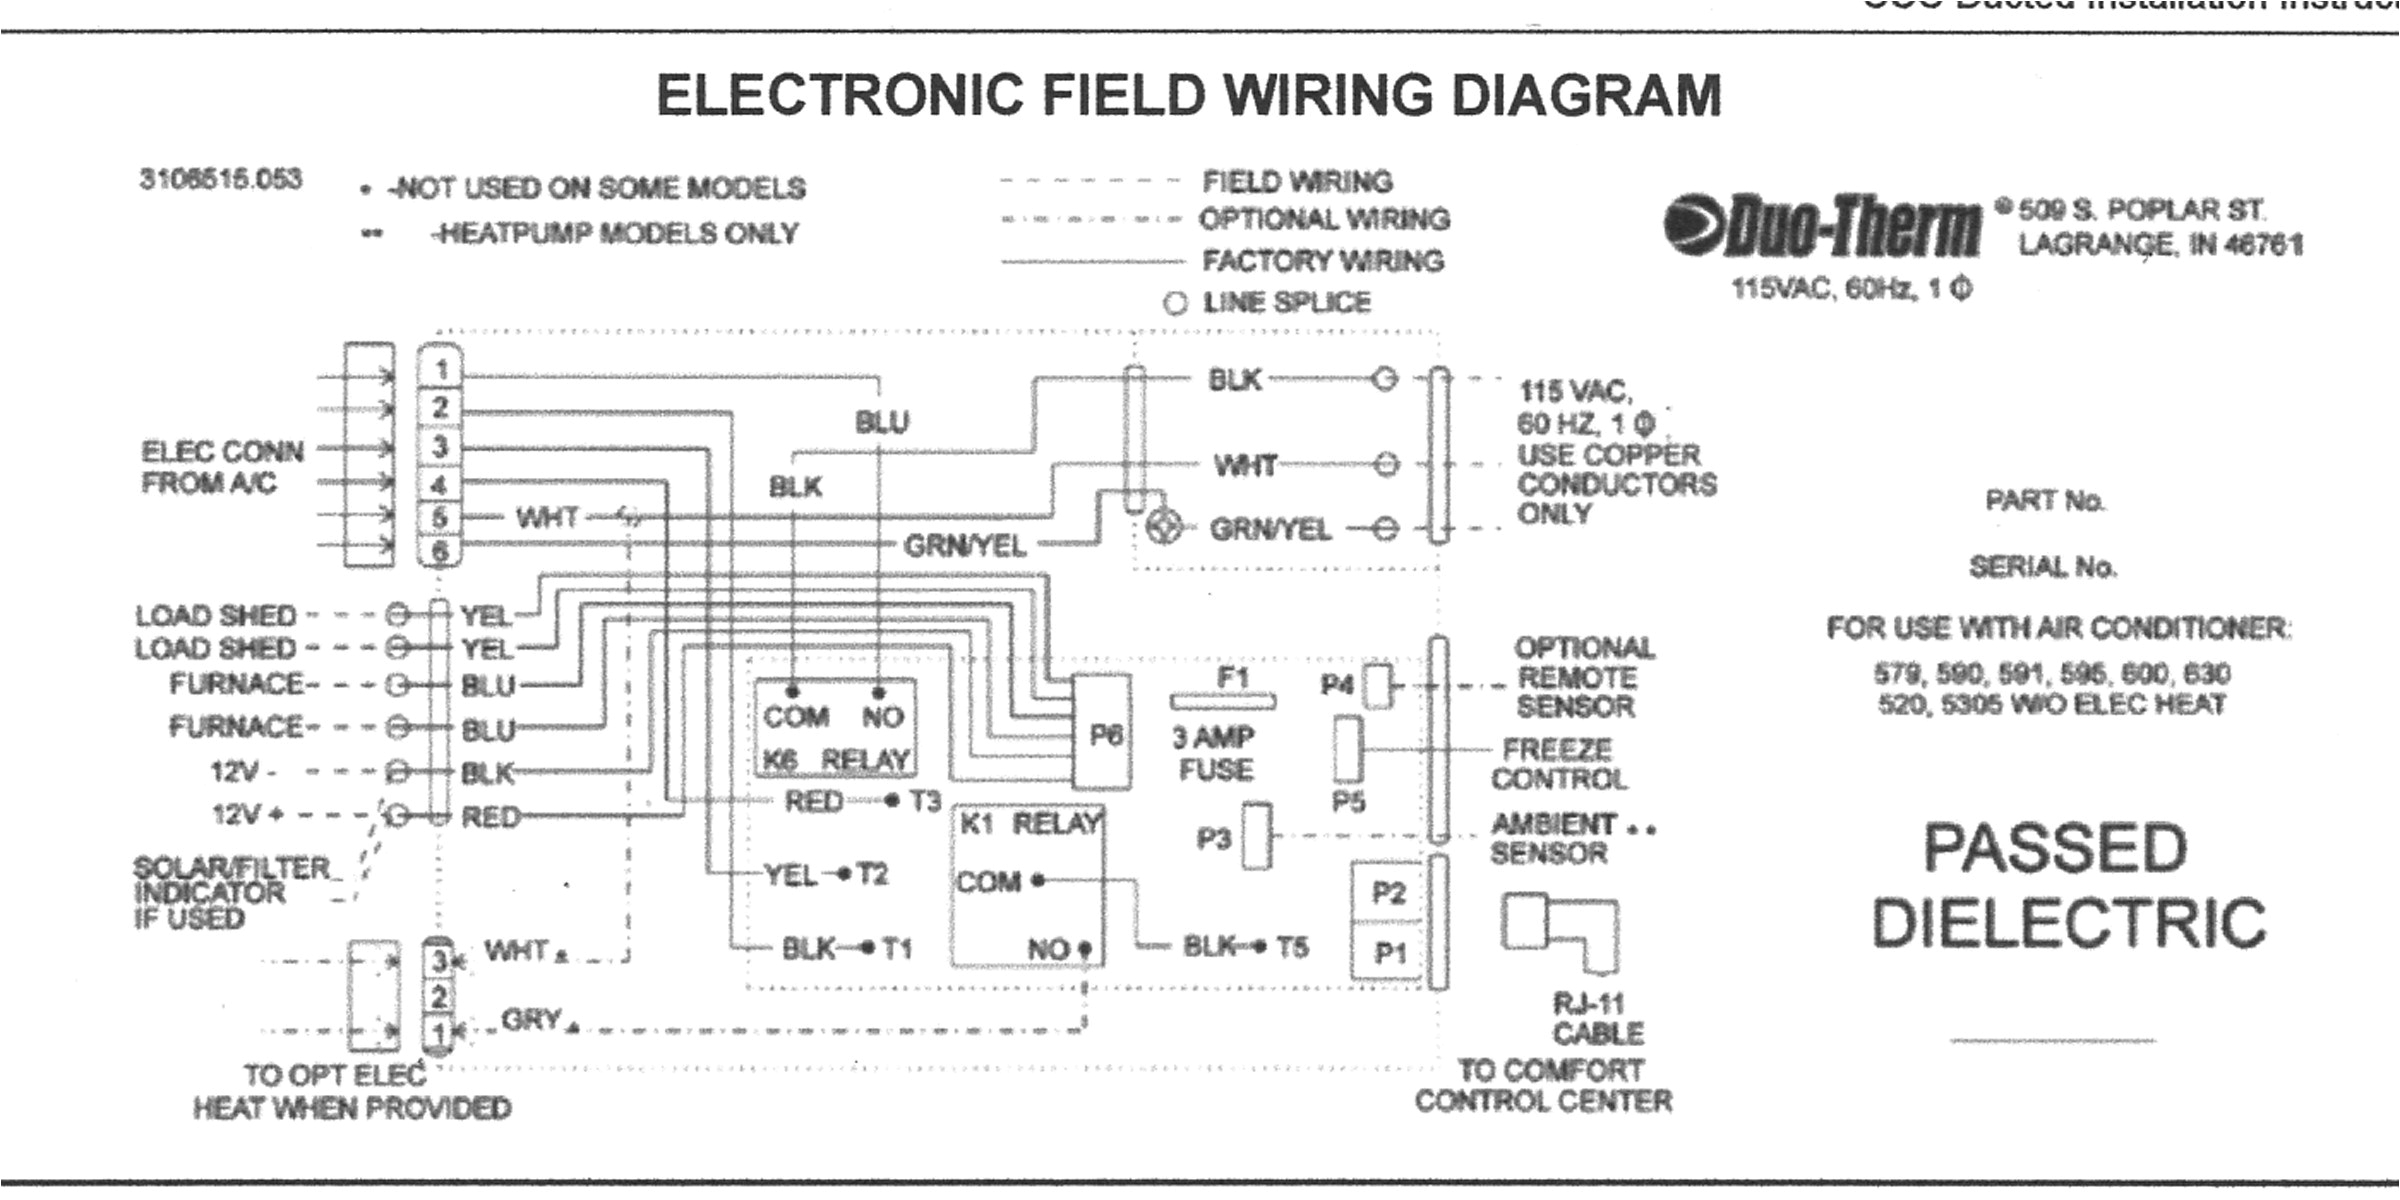 dometic rv thermostat wiring diagram awesome for furnace new roof dometic rv thermostat wiring diagram awesome